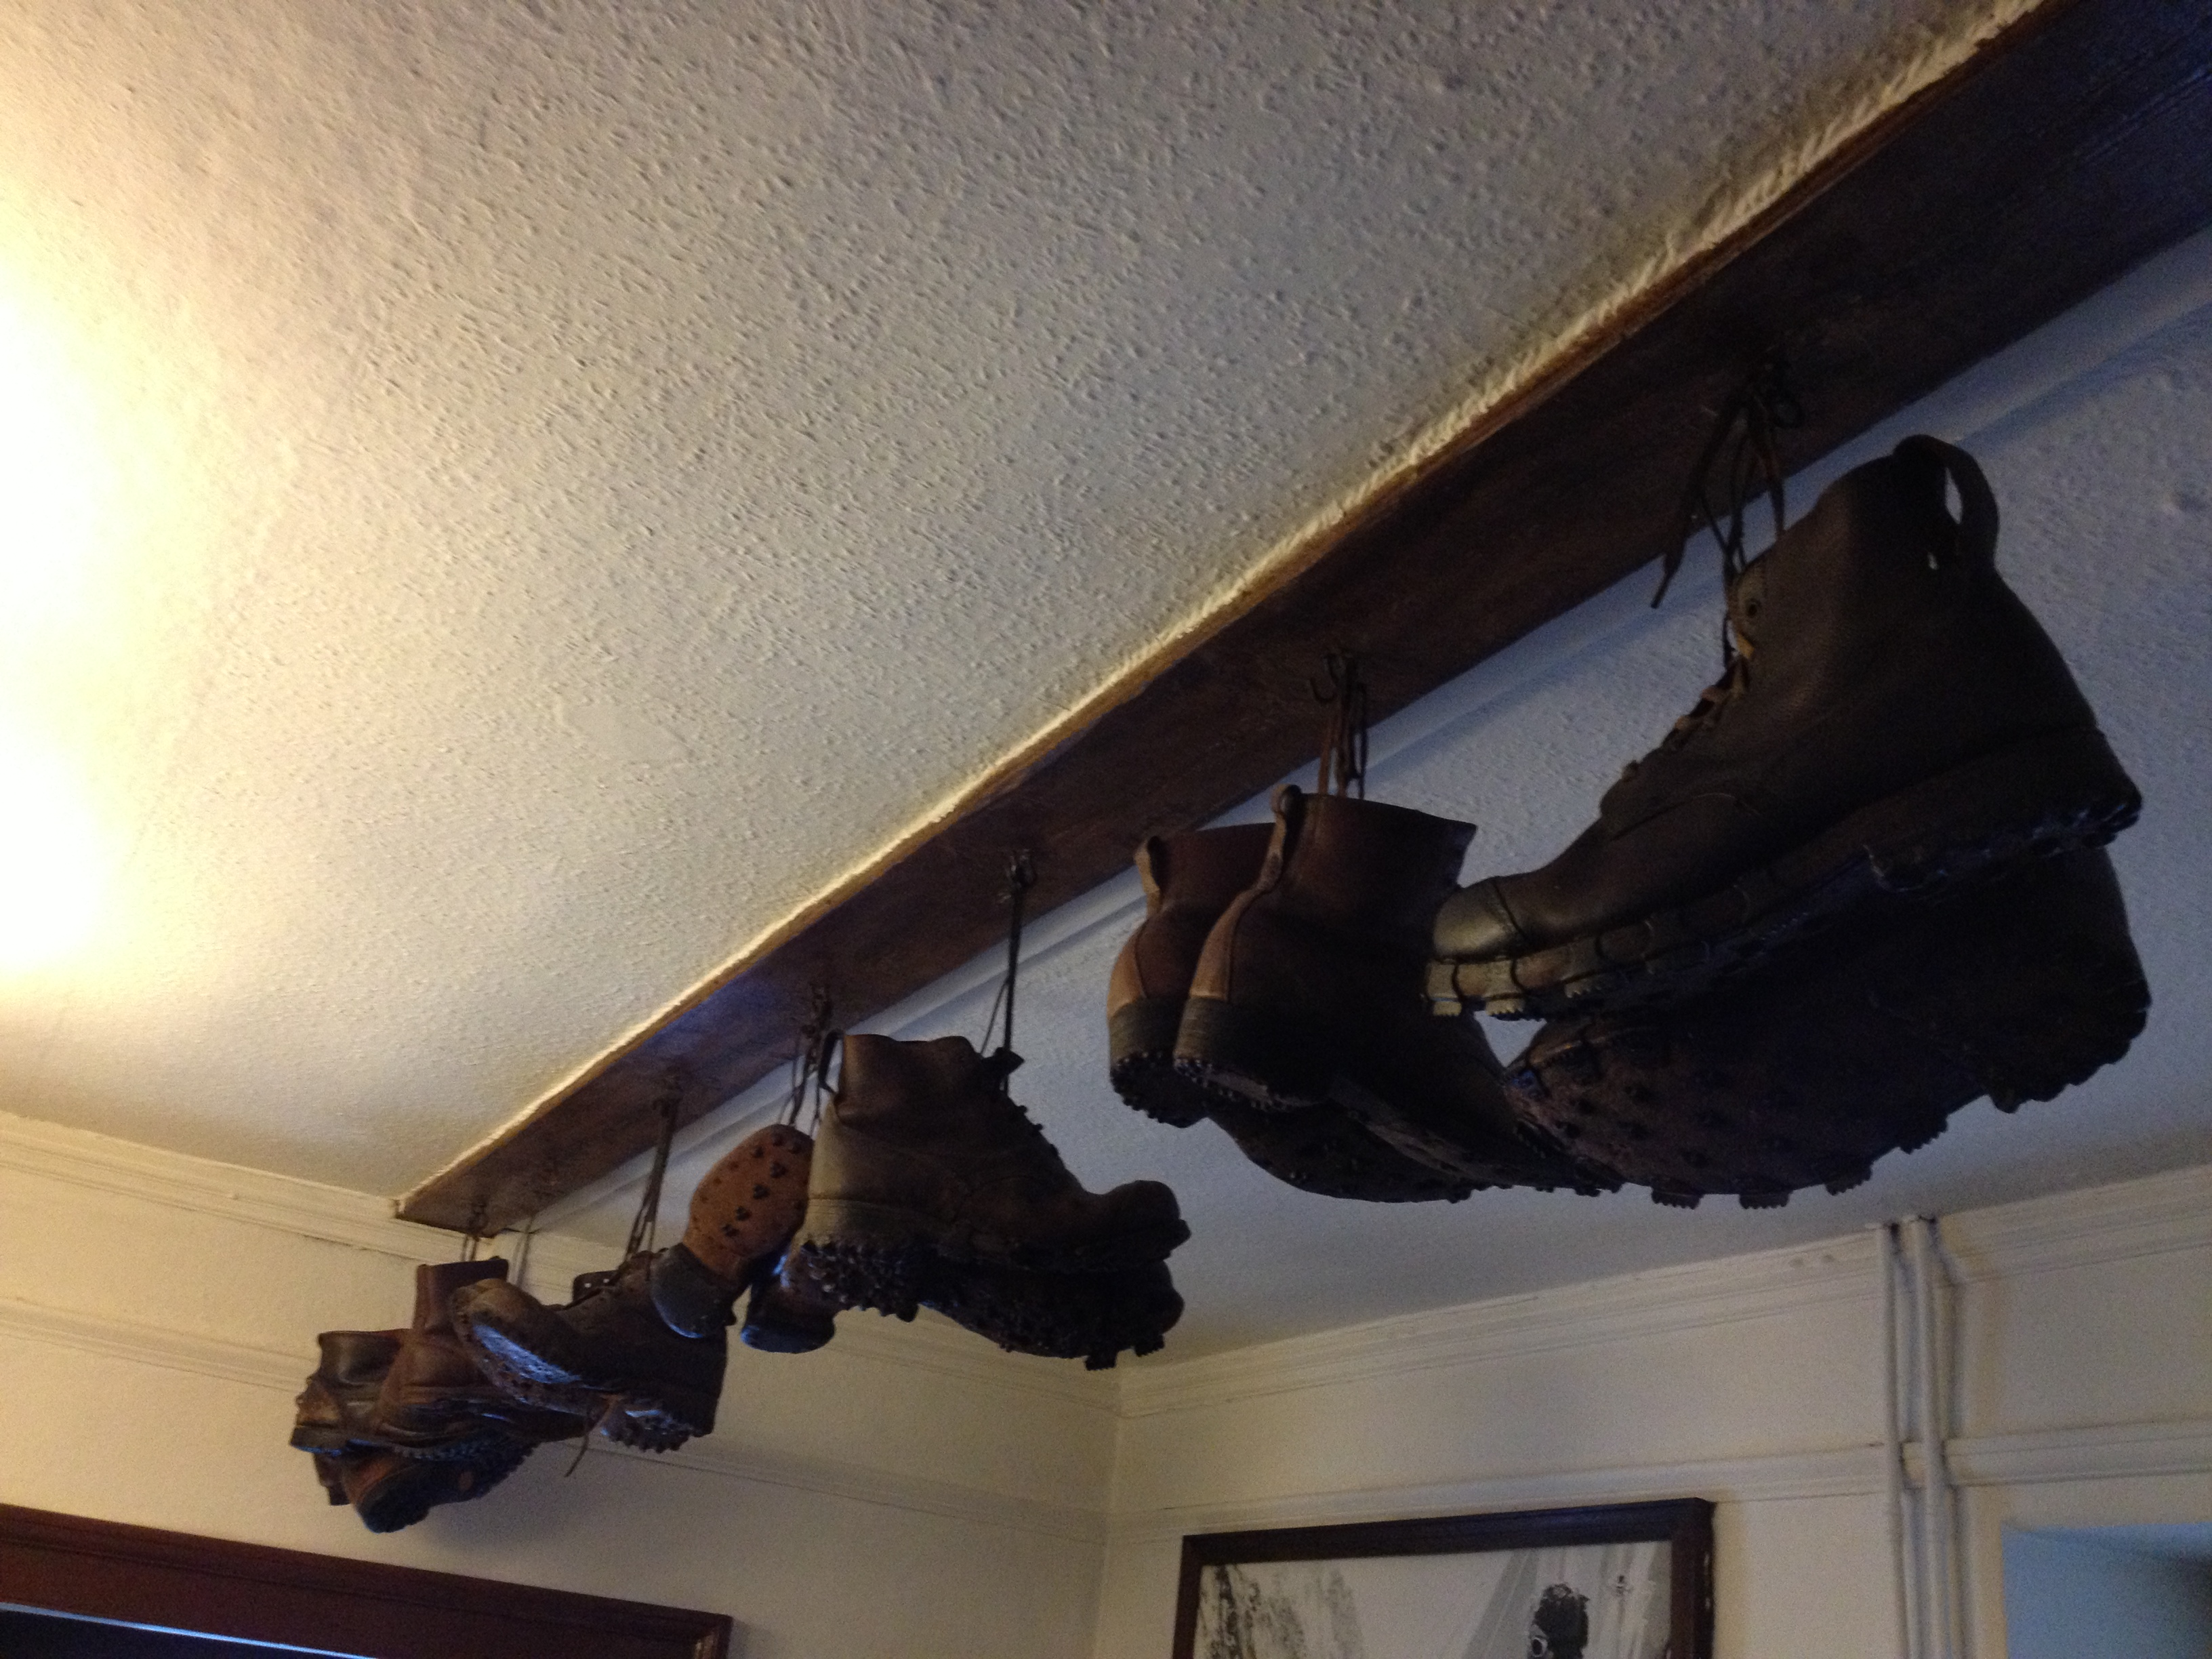 Boots worn by the team that climbed Everest in 1953 but not the actual boots used on Everest